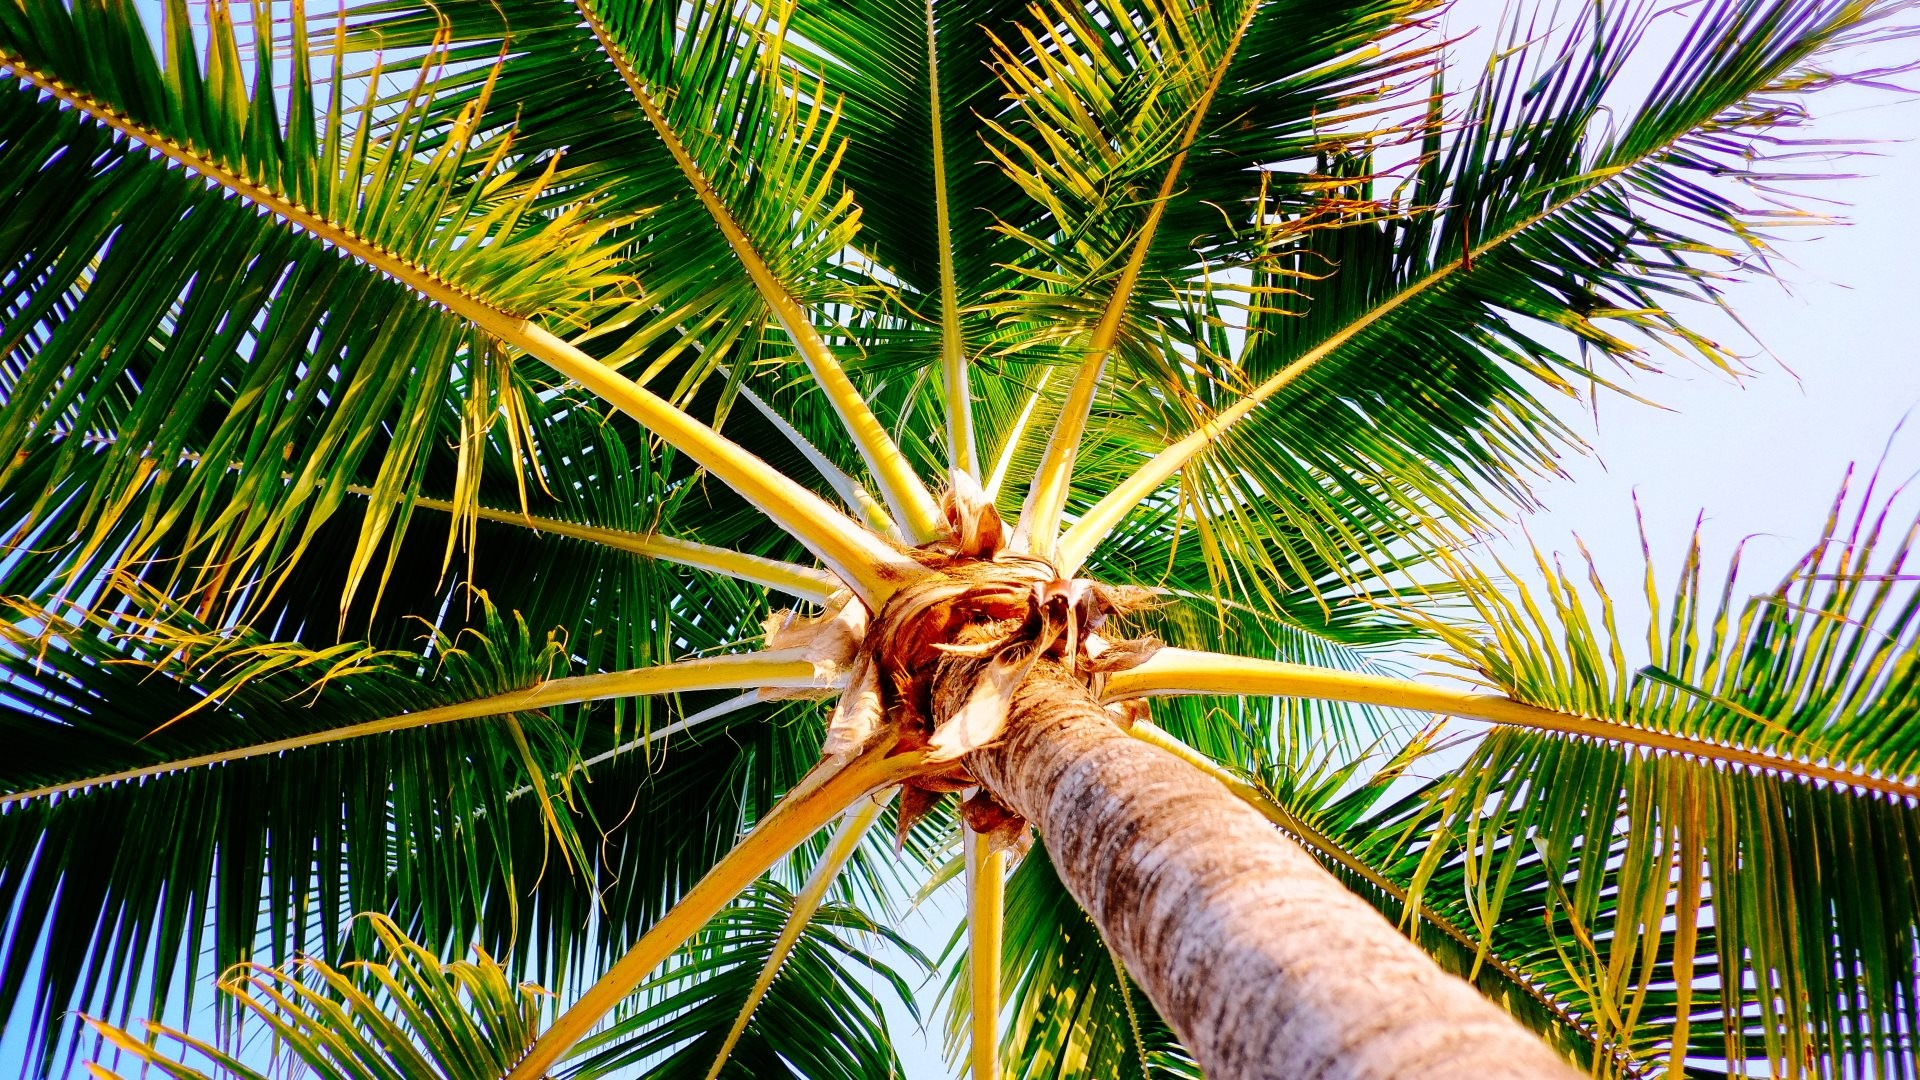 1920x1080 Filename: Palm tree from Montego Bay Jamaica_HD.jpg